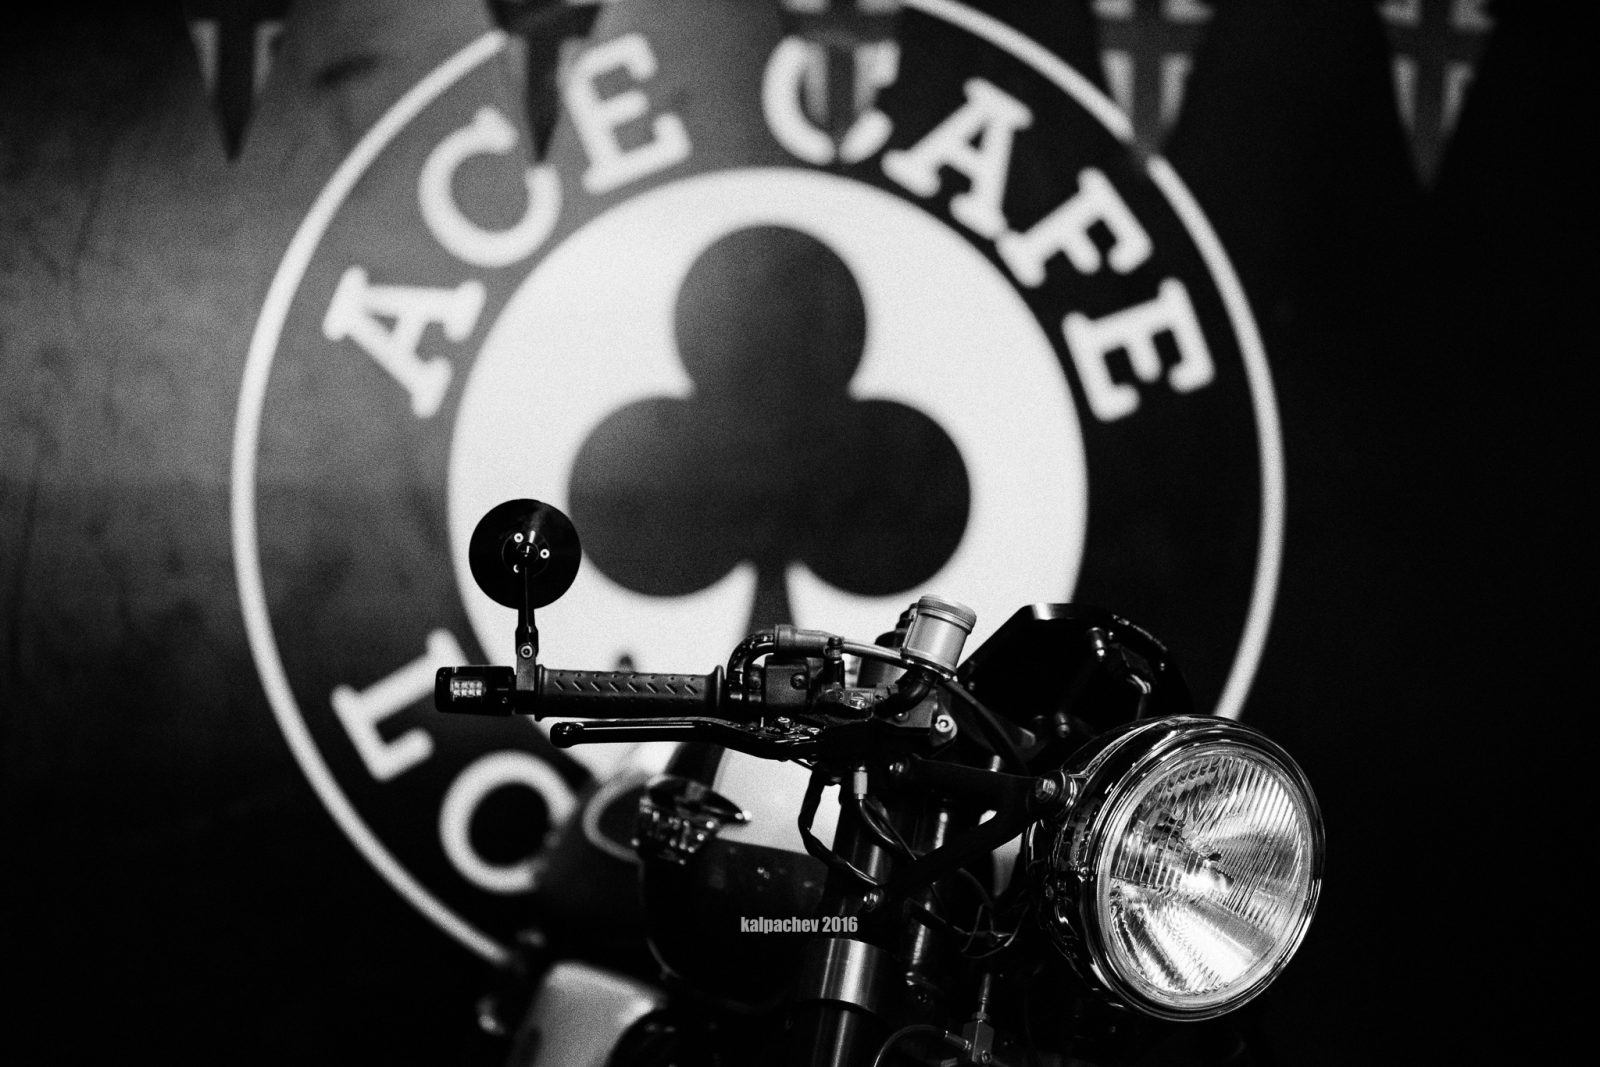 Ace Cafe London with Laowa 105mm f/2